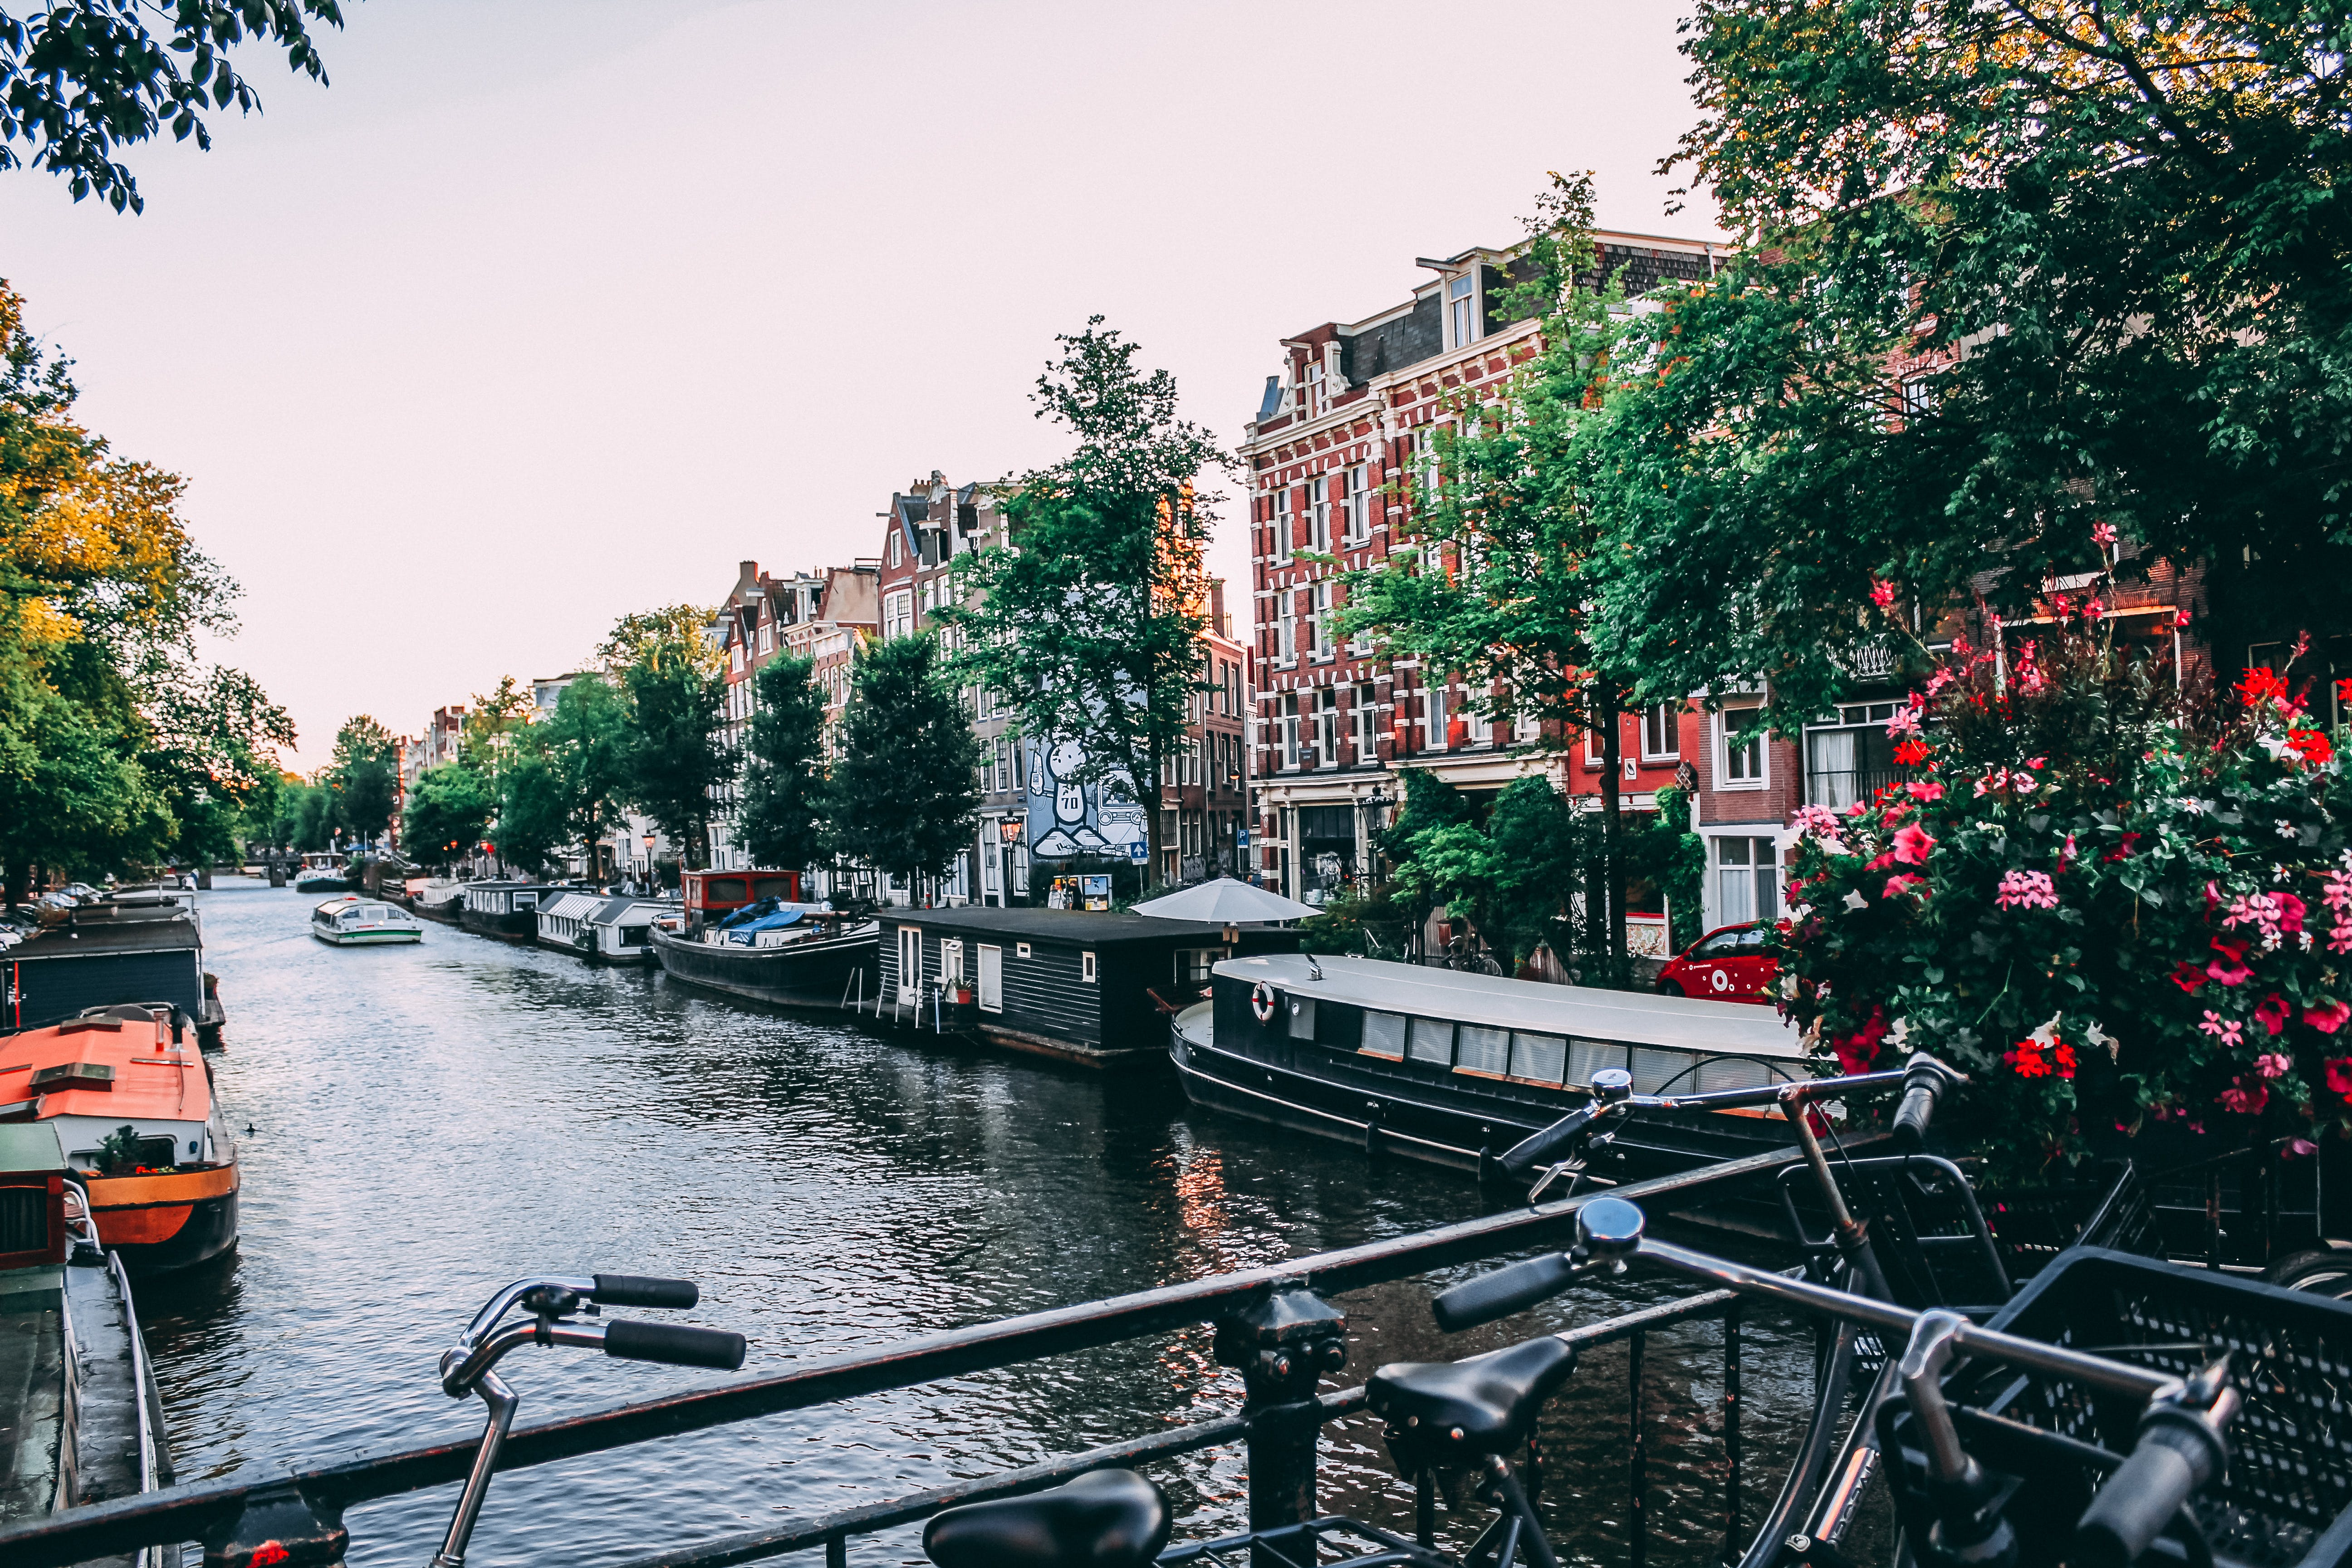 amsterdam, architecture, bicycles